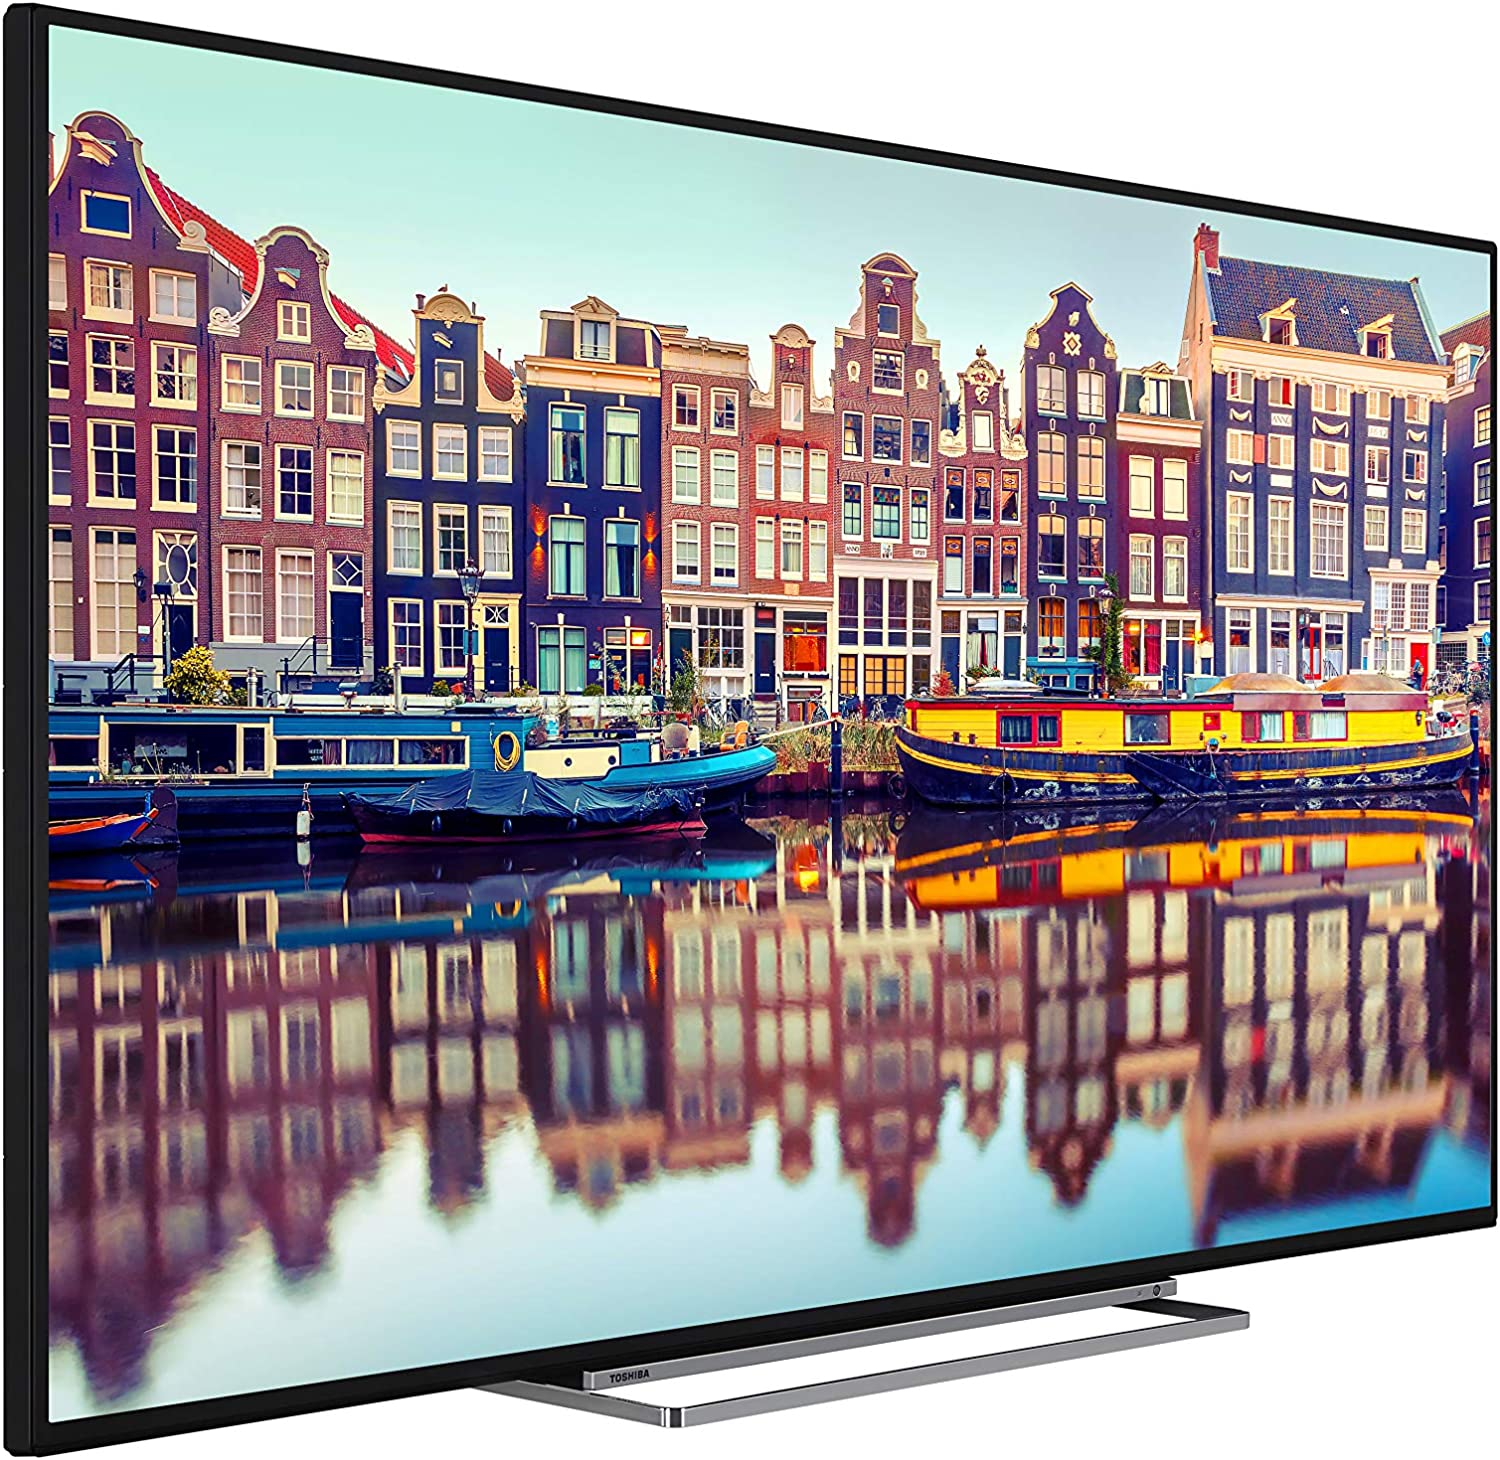 2020 Model Toshiba 55VL5A63DB 55-Inch Smart 4K Ultra HD HDR LED TV Freeview HD Freeview Play and Built-in WiFi